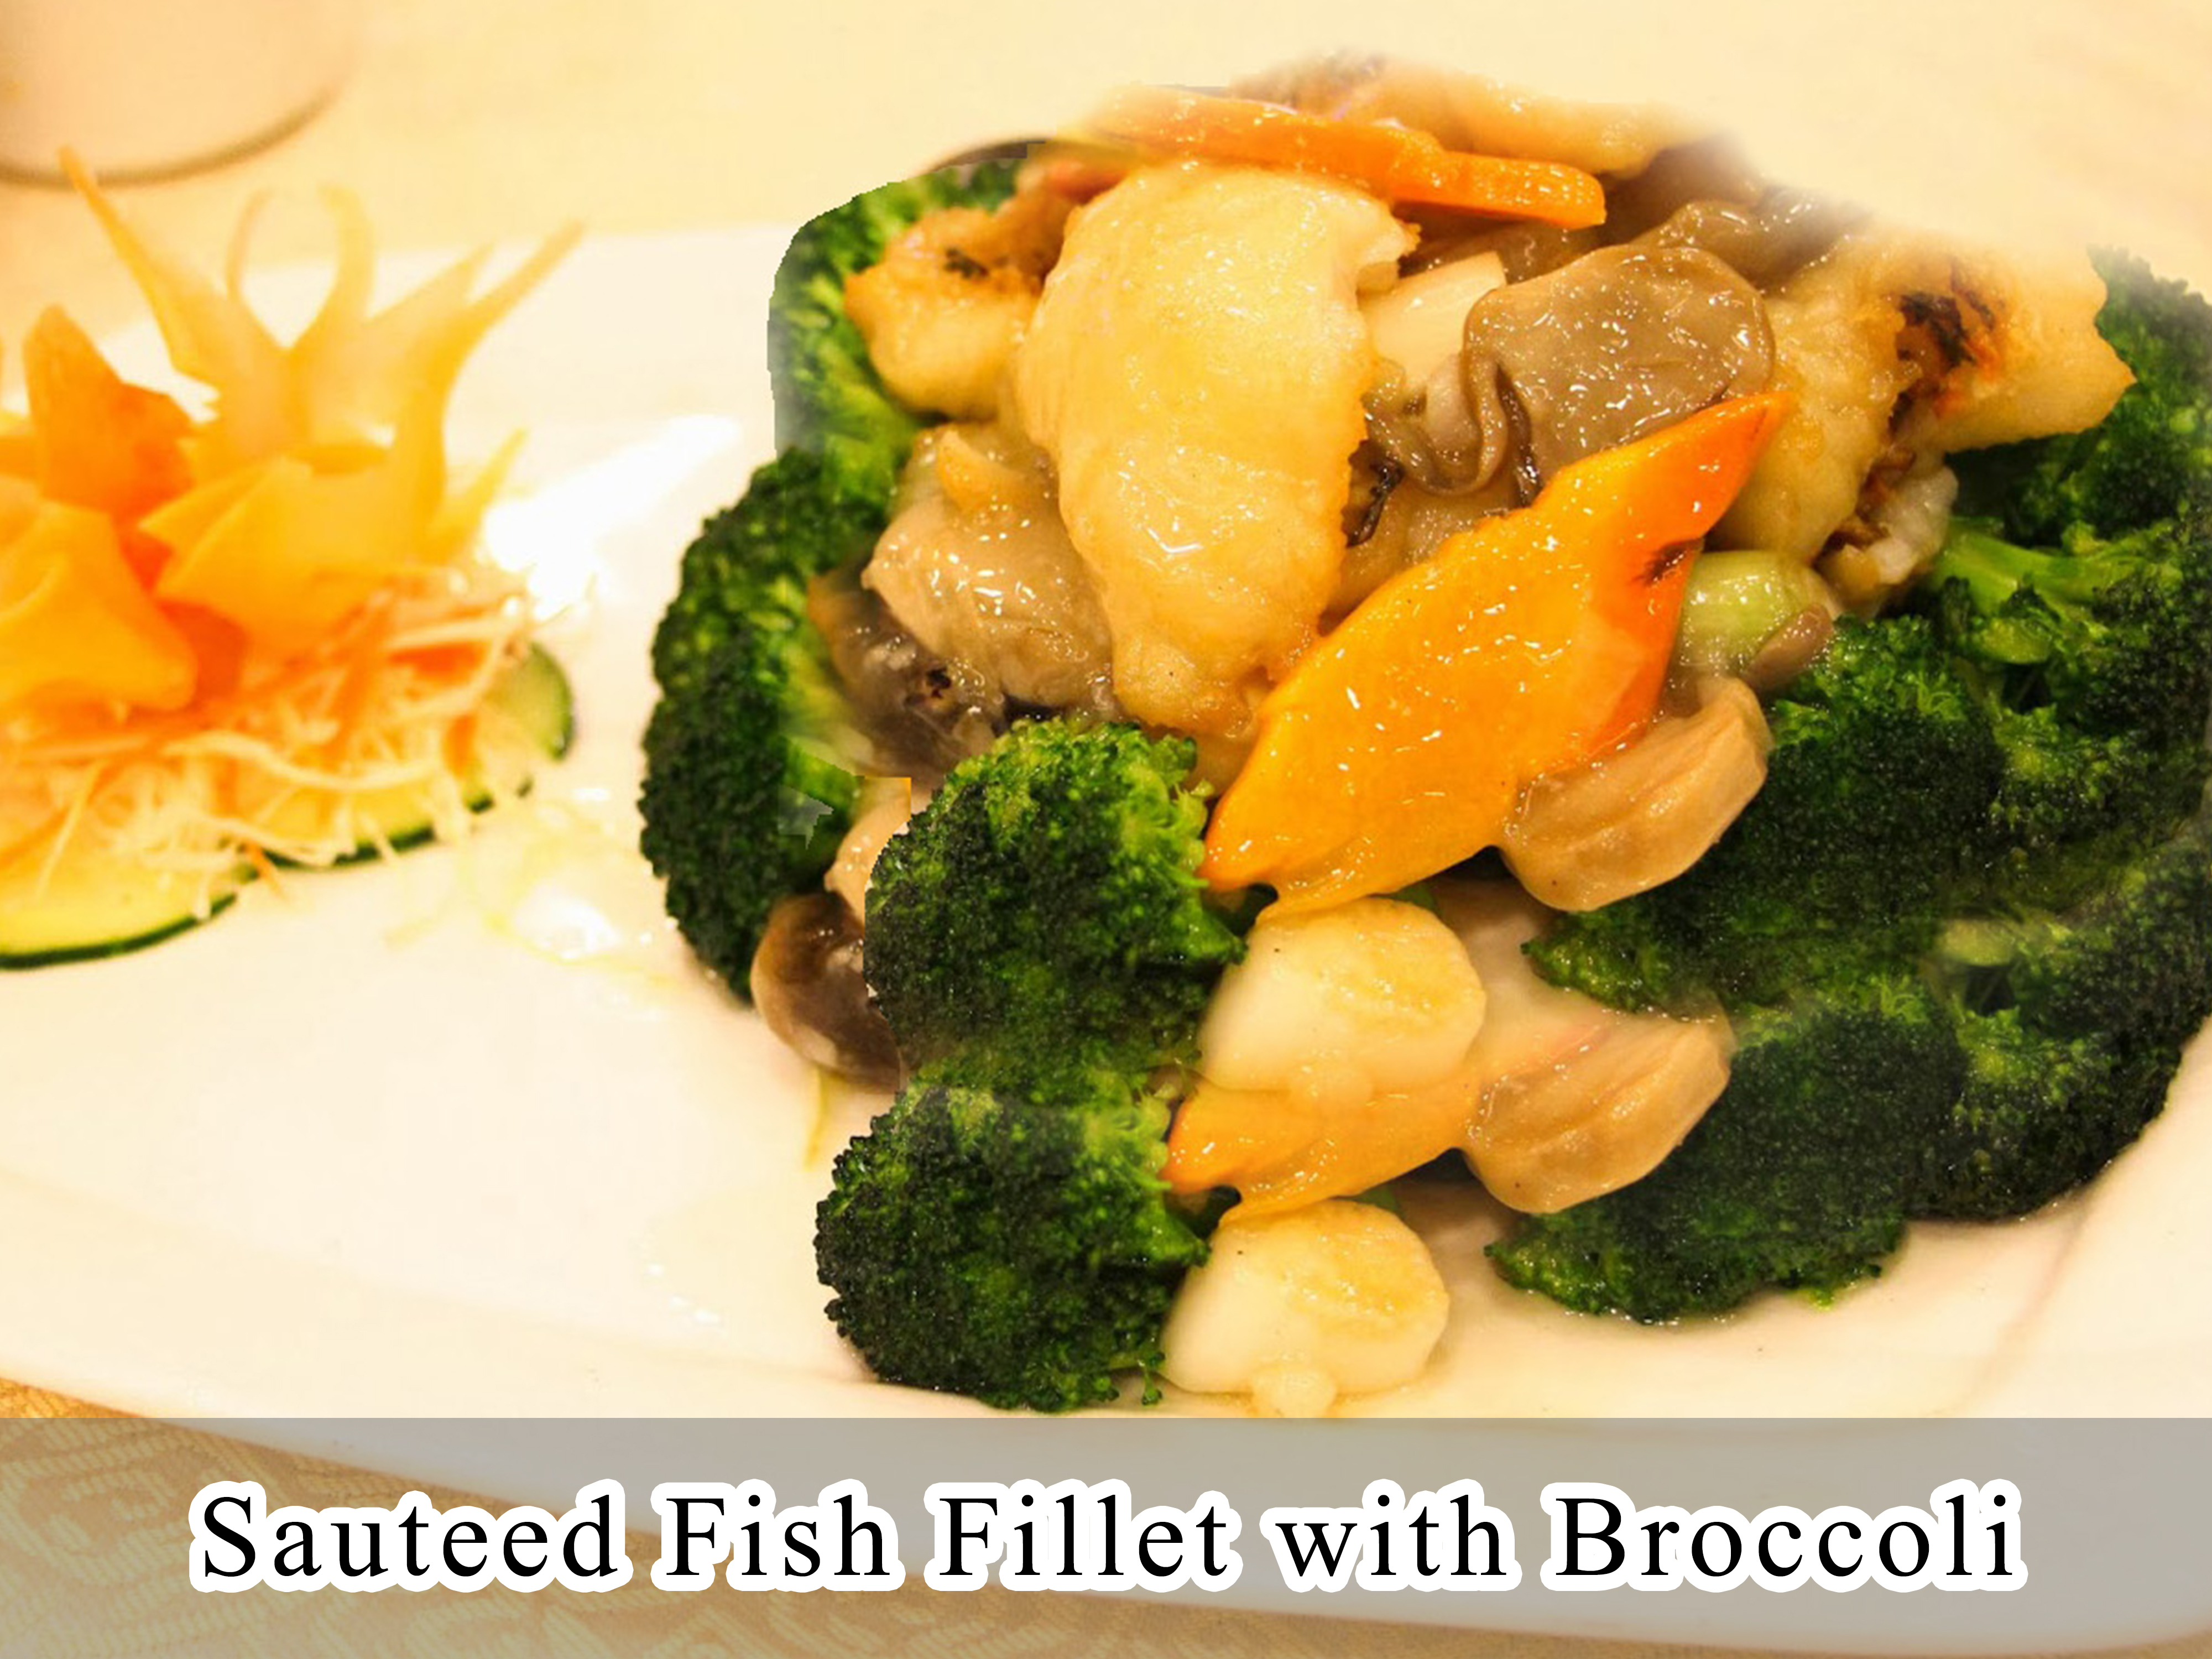 Sauteed Fish Fillet with Broccoli